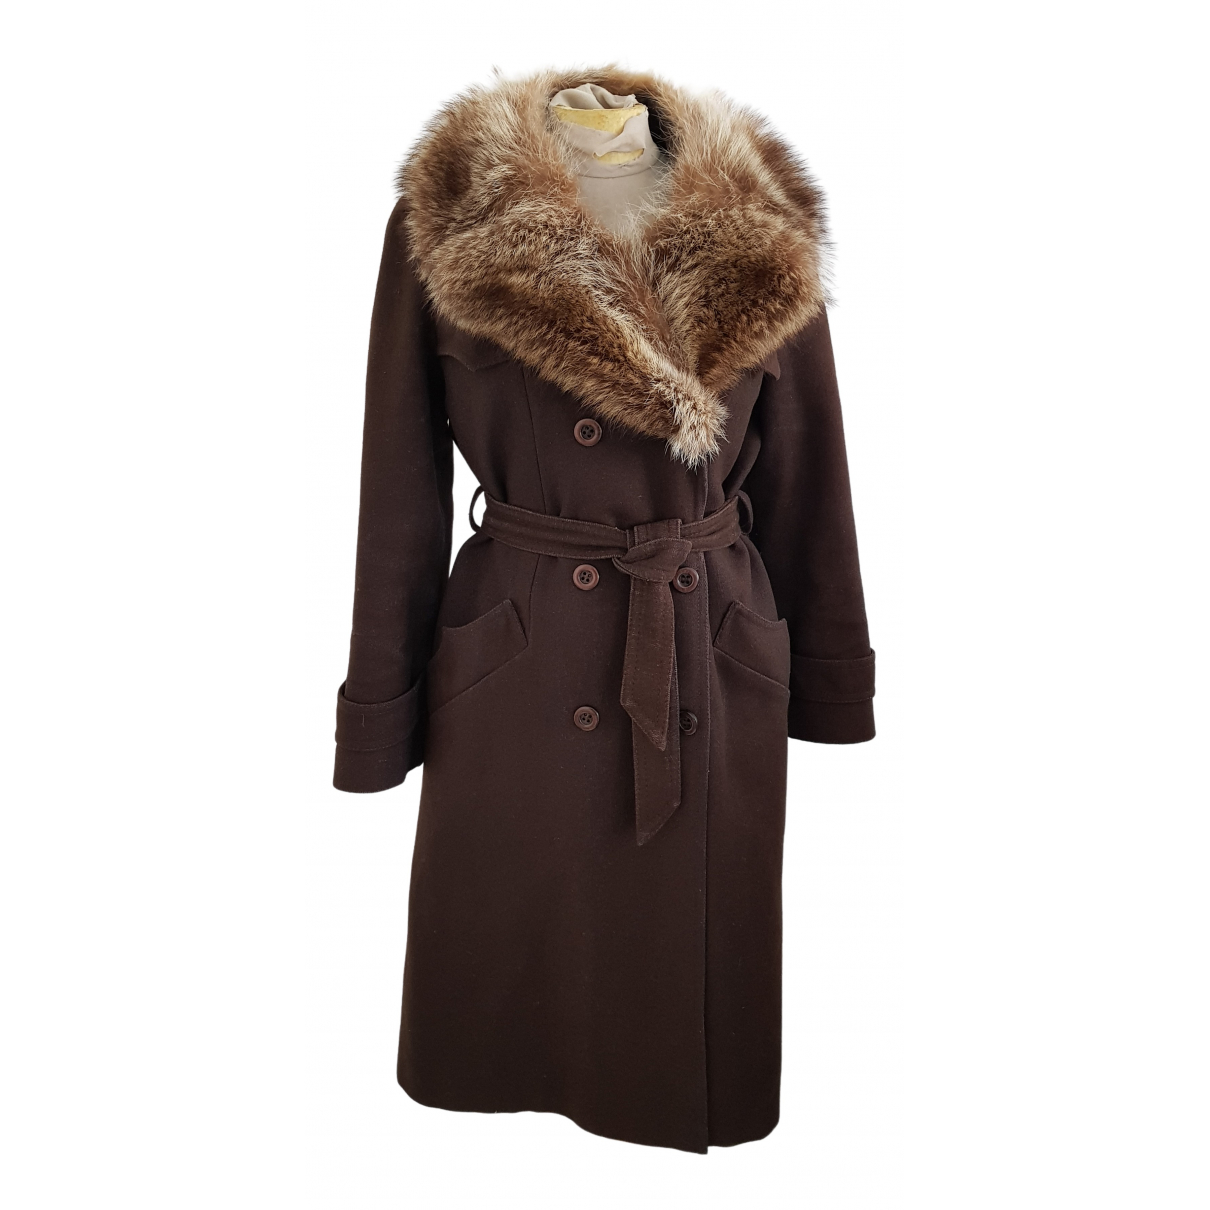 Non Signé / Unsigned N Brown Wool coat for Women 36 FR